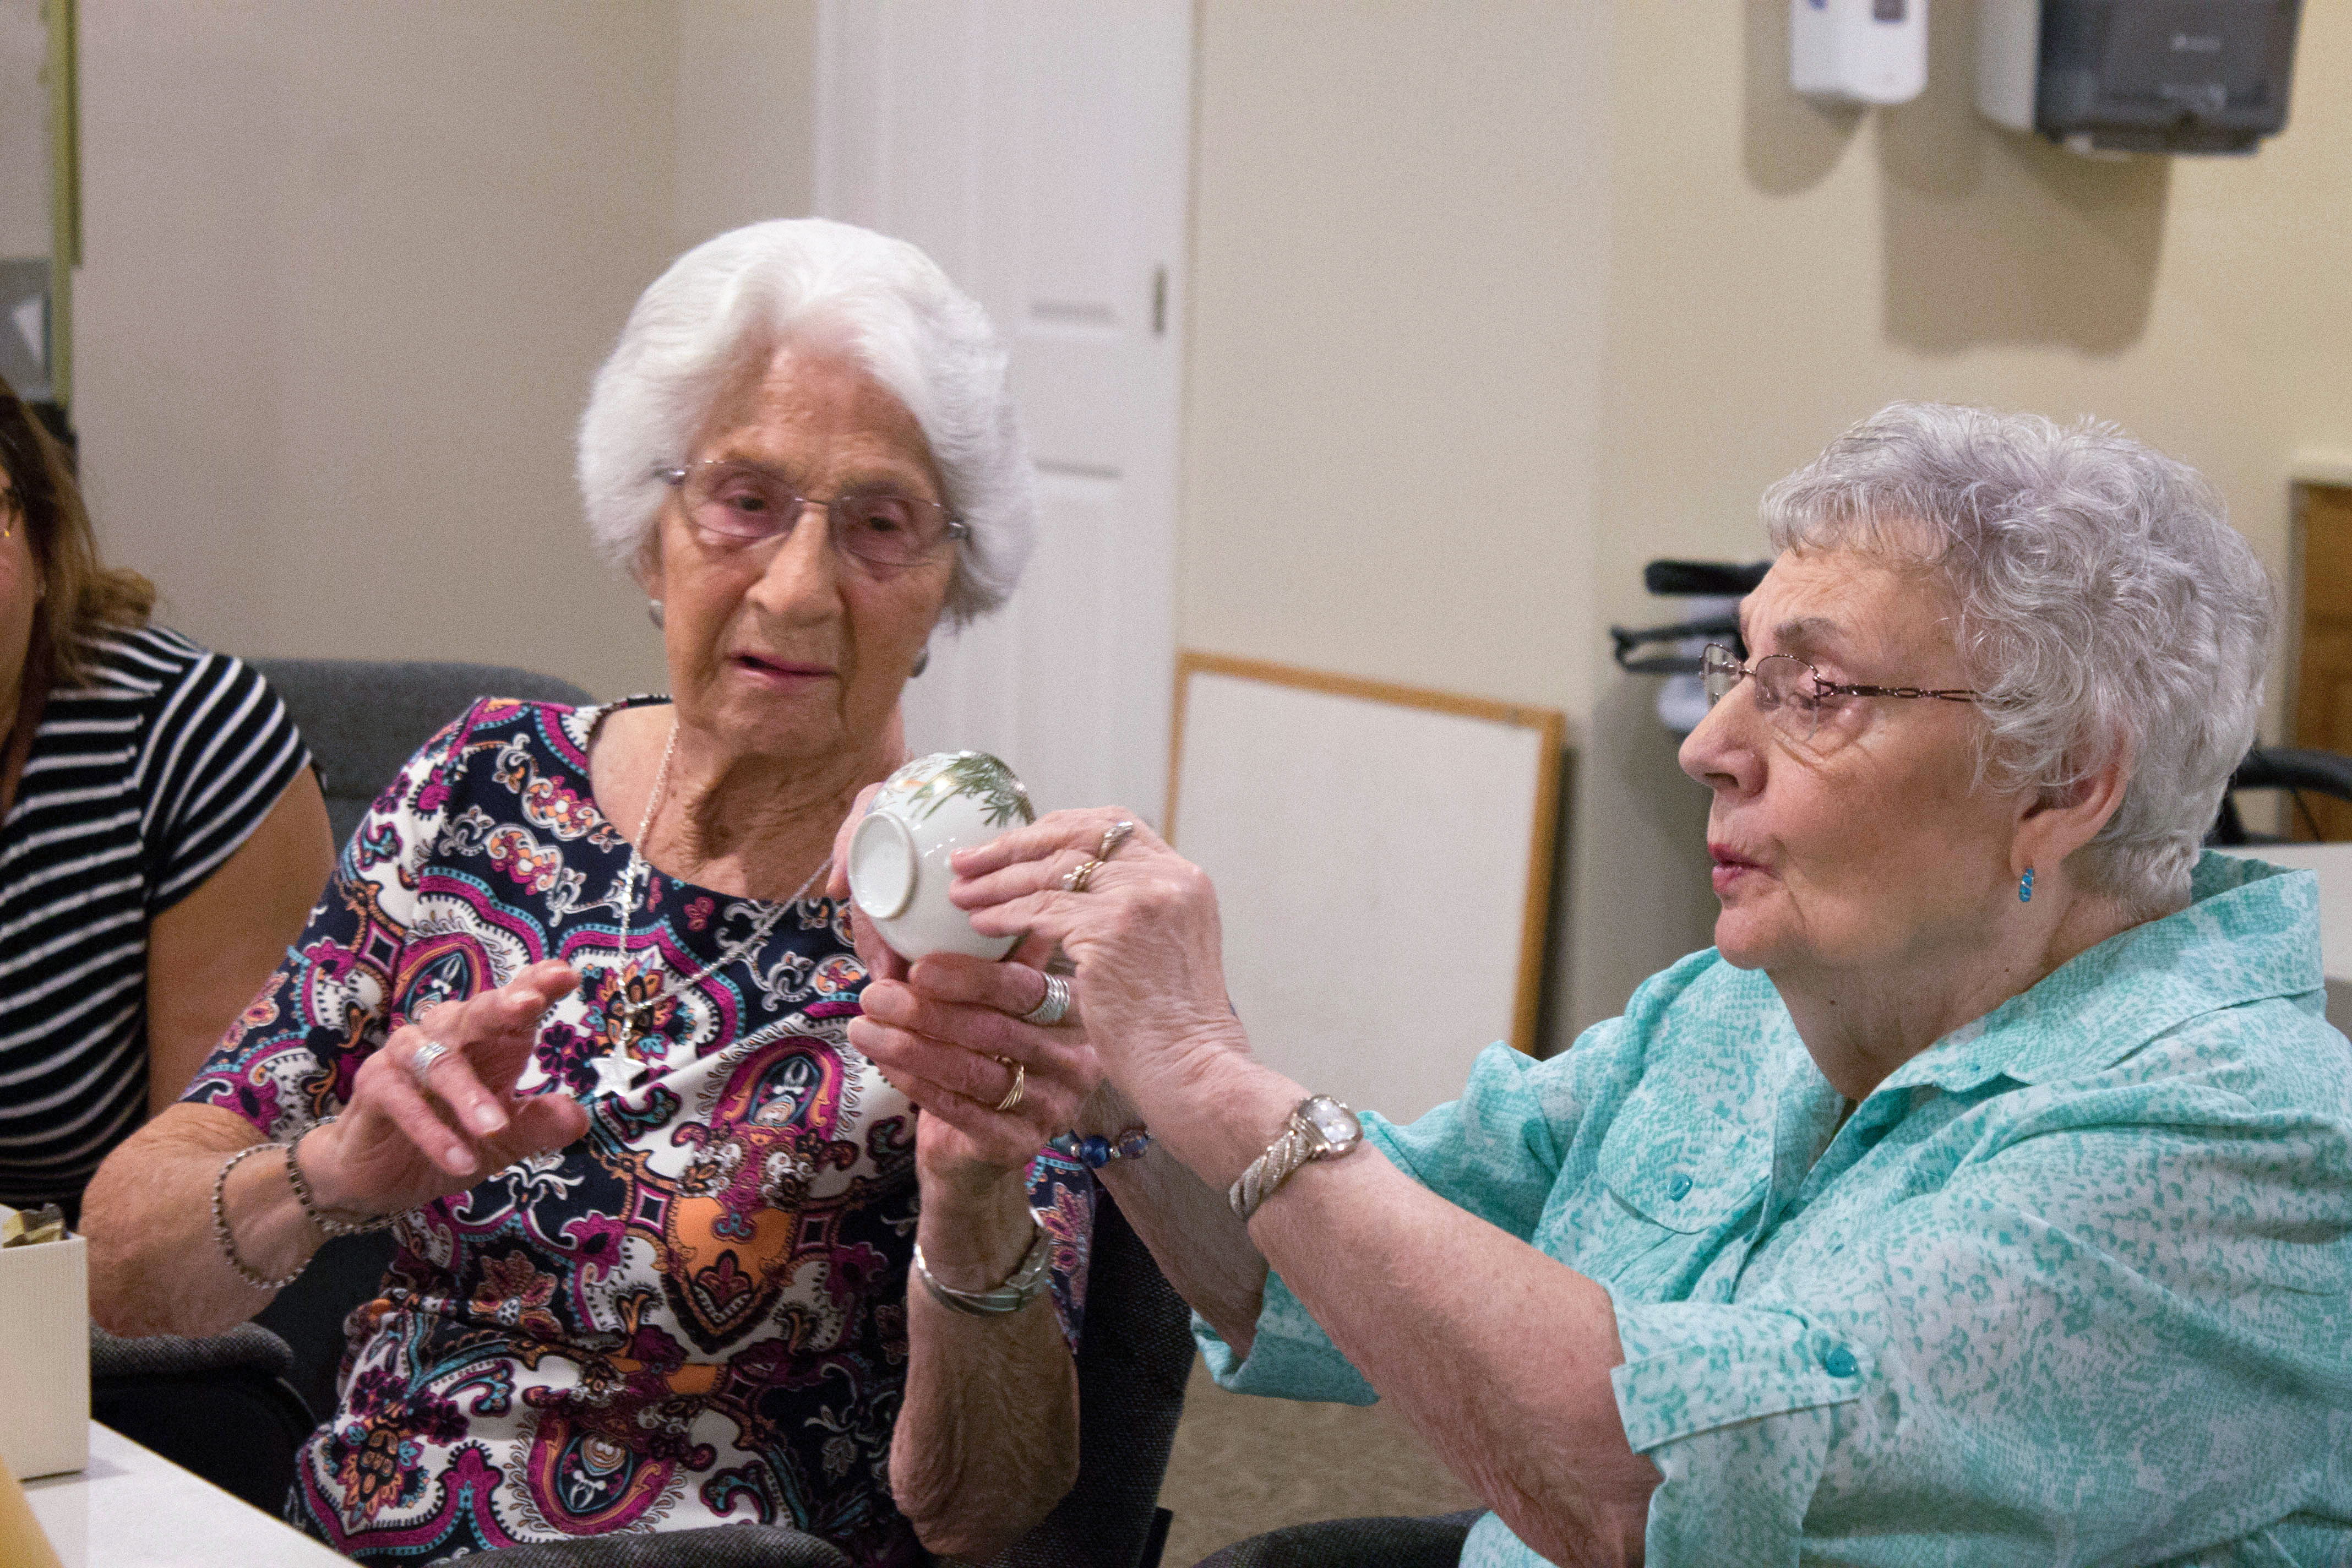 Two older women looking at a tea cup together.